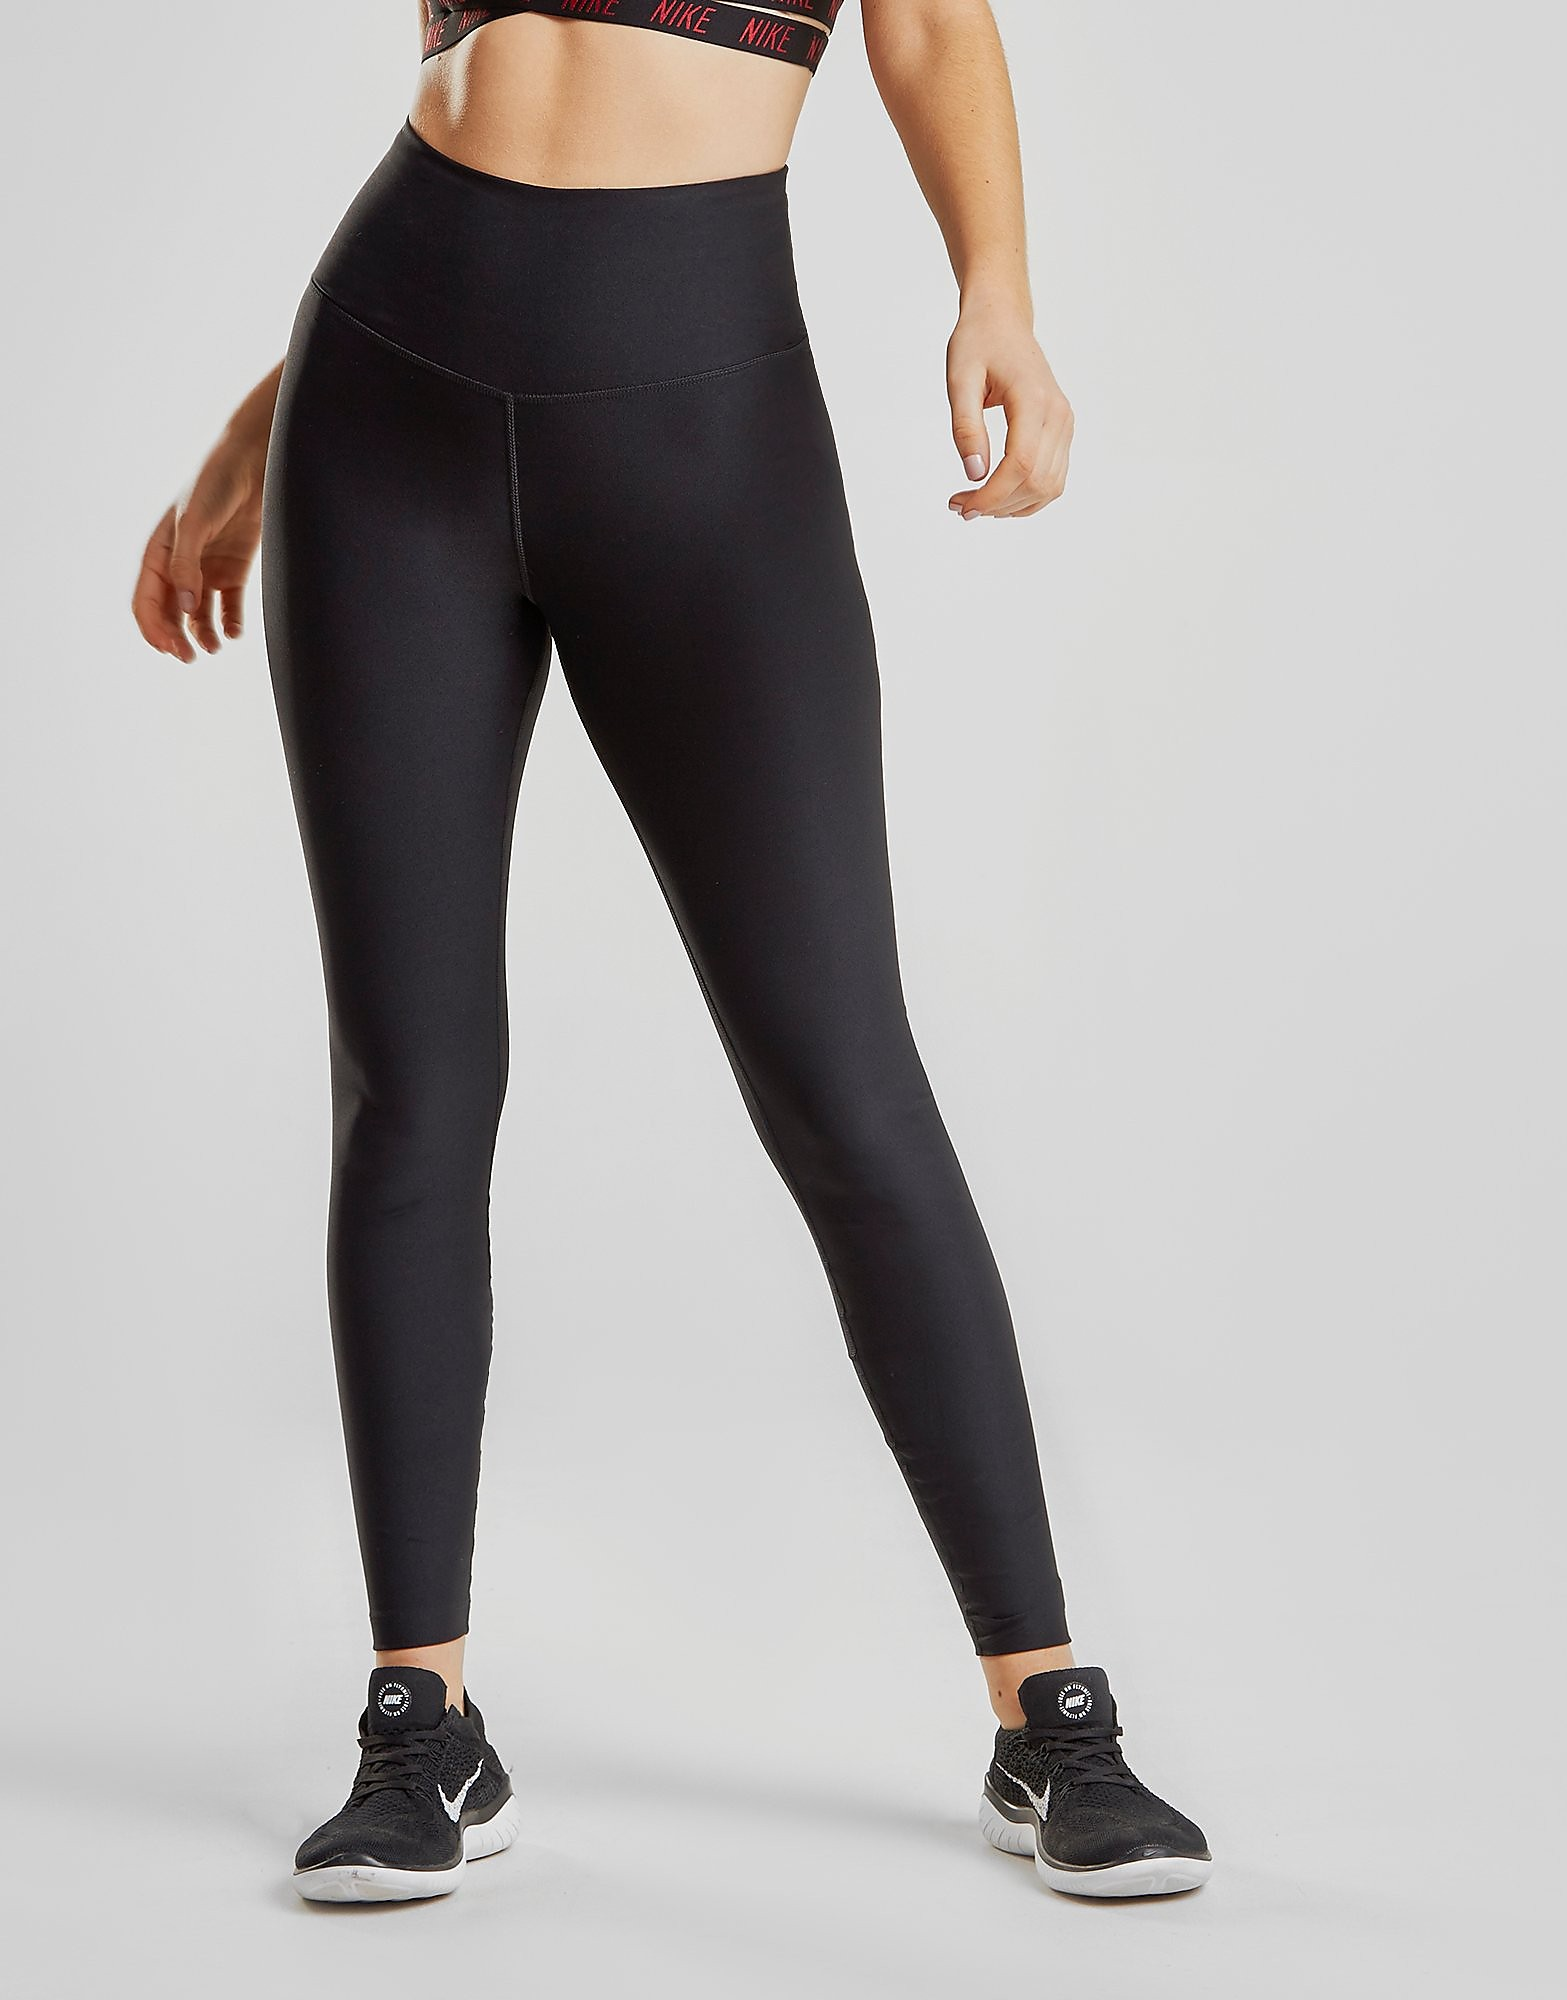 Nike High Rise Sculpt Training Tights